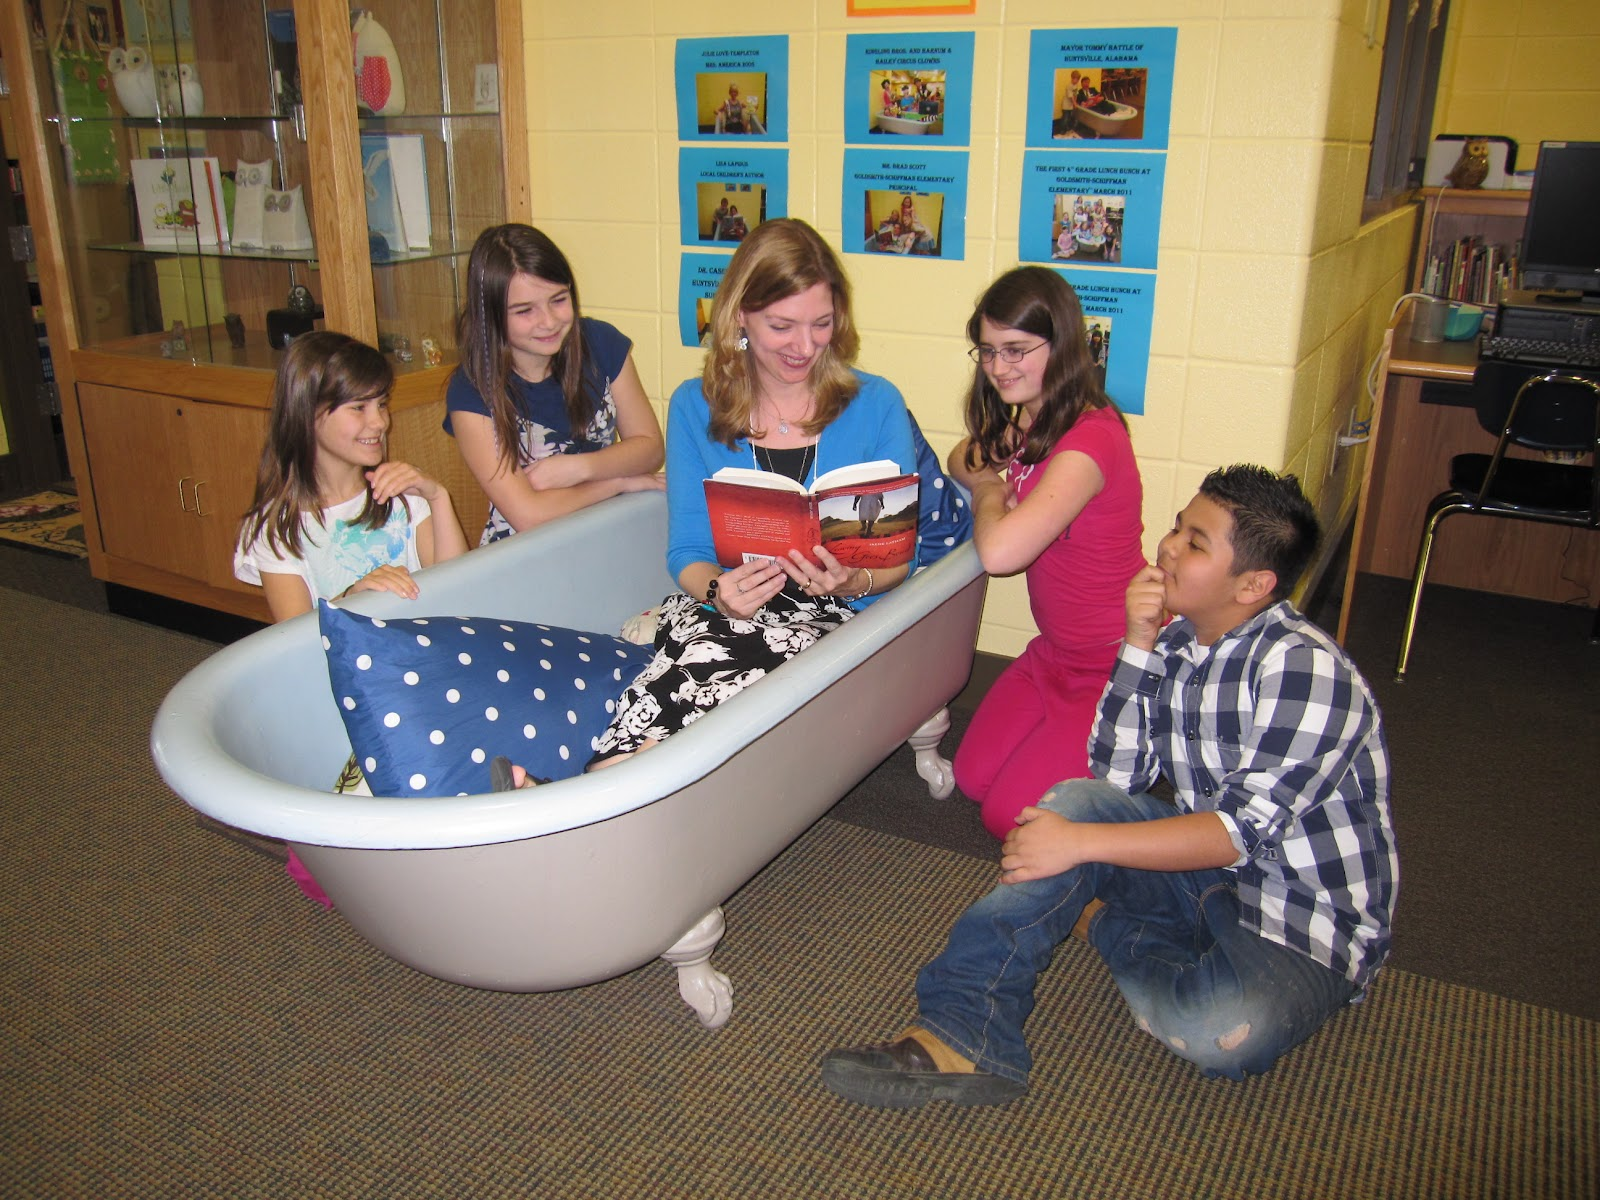 Every Day Is Special: February 9, 2013 - Read in the Bathtub Day